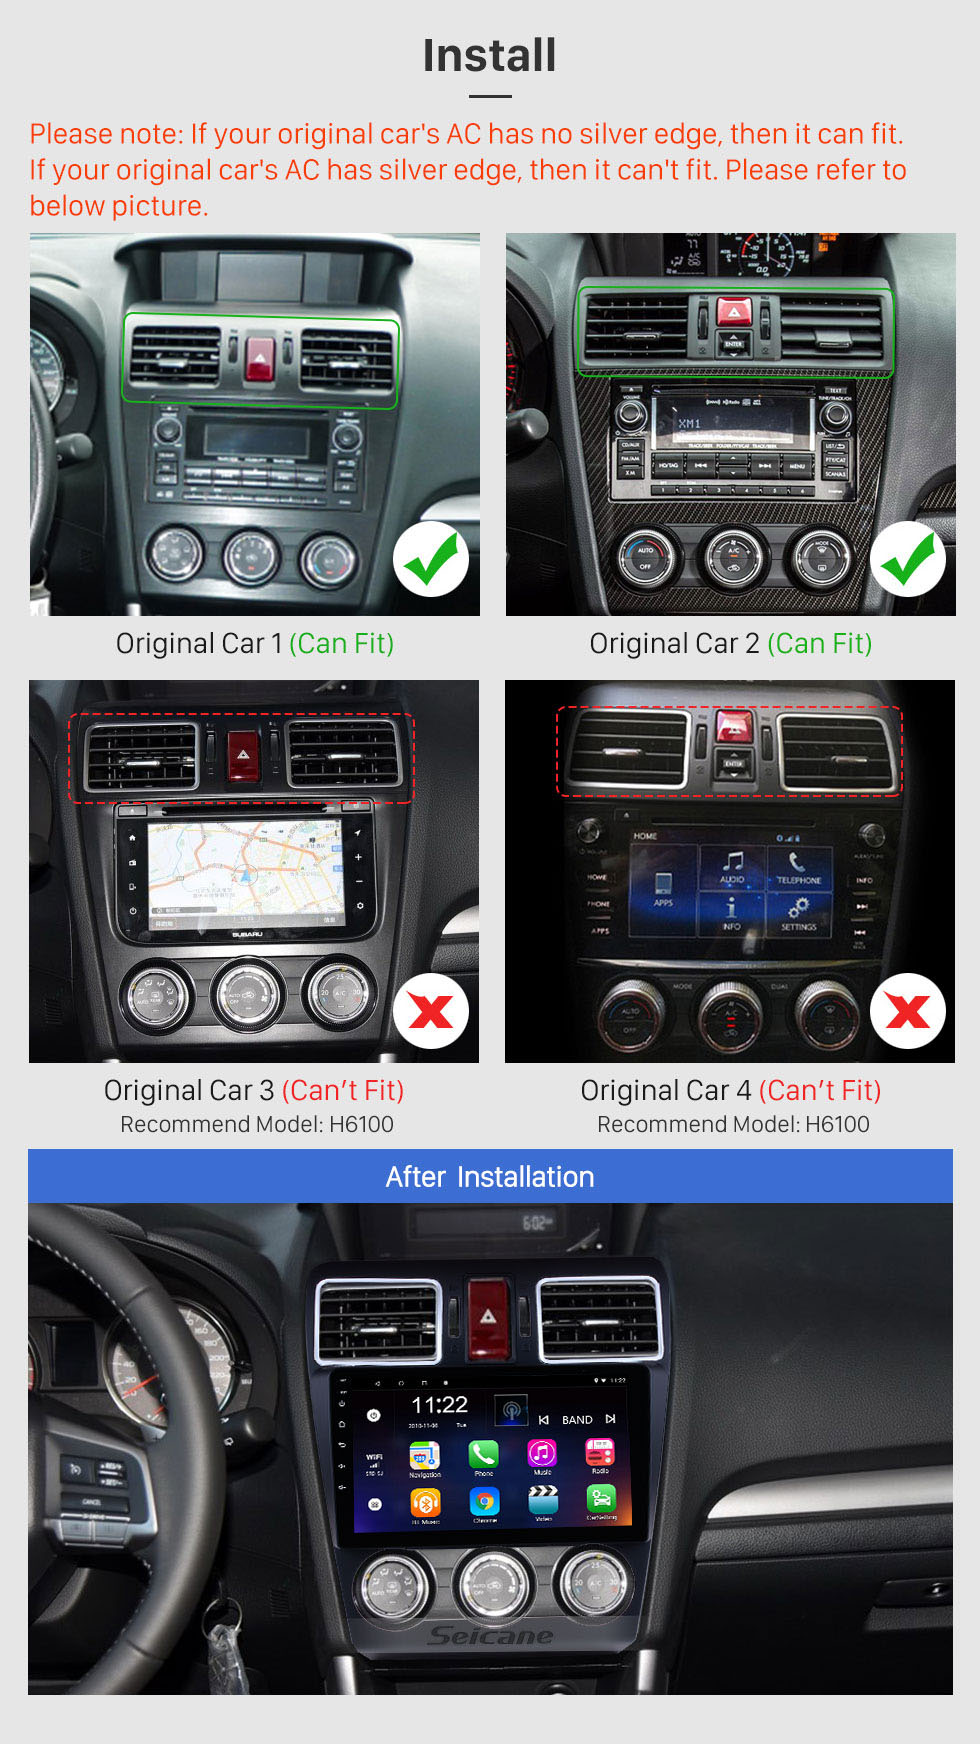 Seicane 9 Inch Android 10.0 Touchscreen Bluetooth Radio For 2013 2014 Subaru XR Forester  Impreza 3G WiFi GPS Navigation system Bluetooth music TPMS DVR OBD II Rear camera AUX